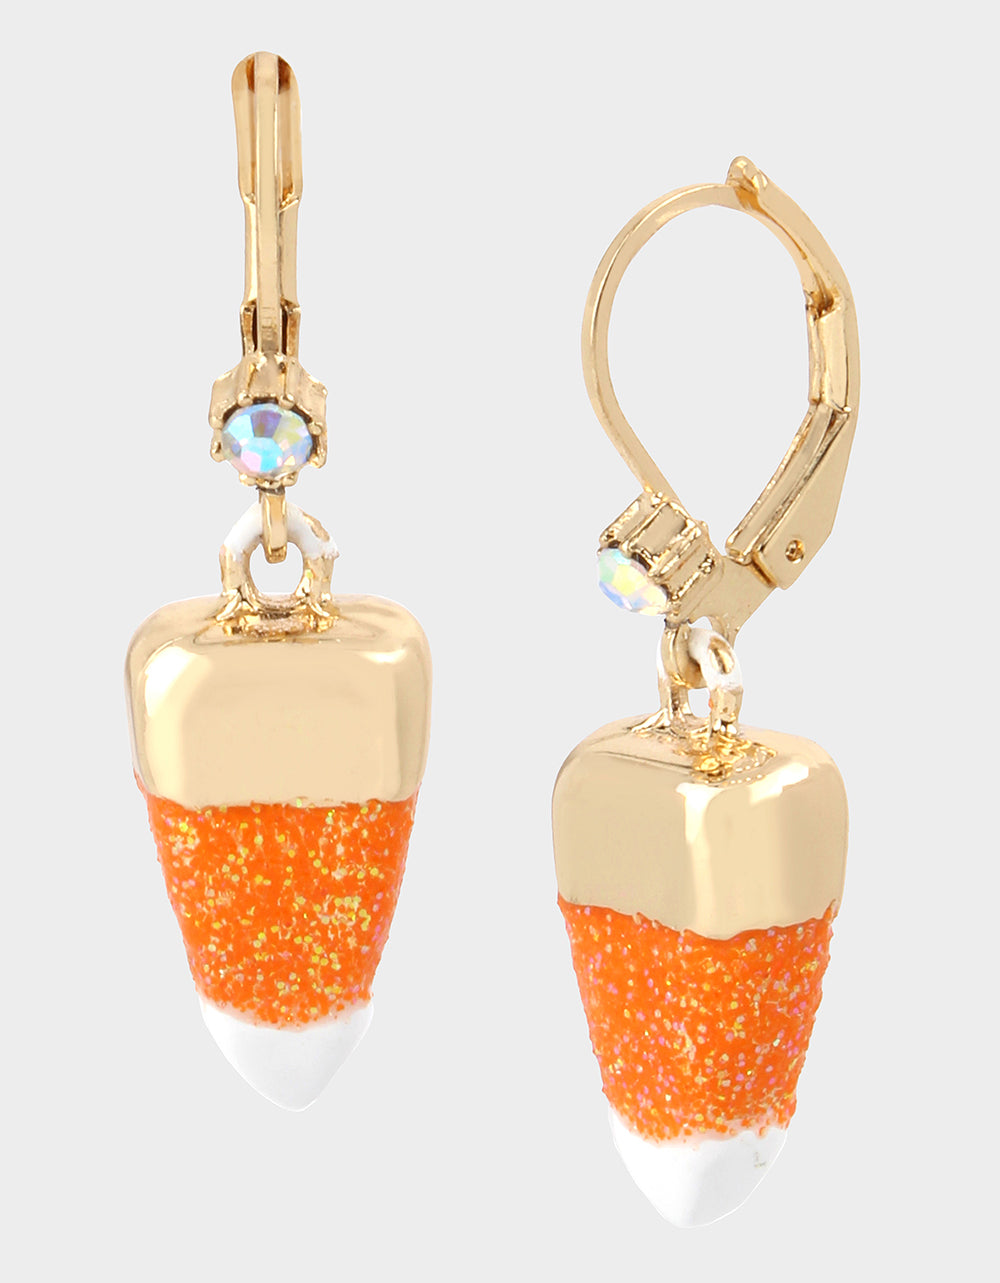 CREEP IT REAL CANDY CORN EARRINGS ORANGE - JEWELRY - Betsey Johnson